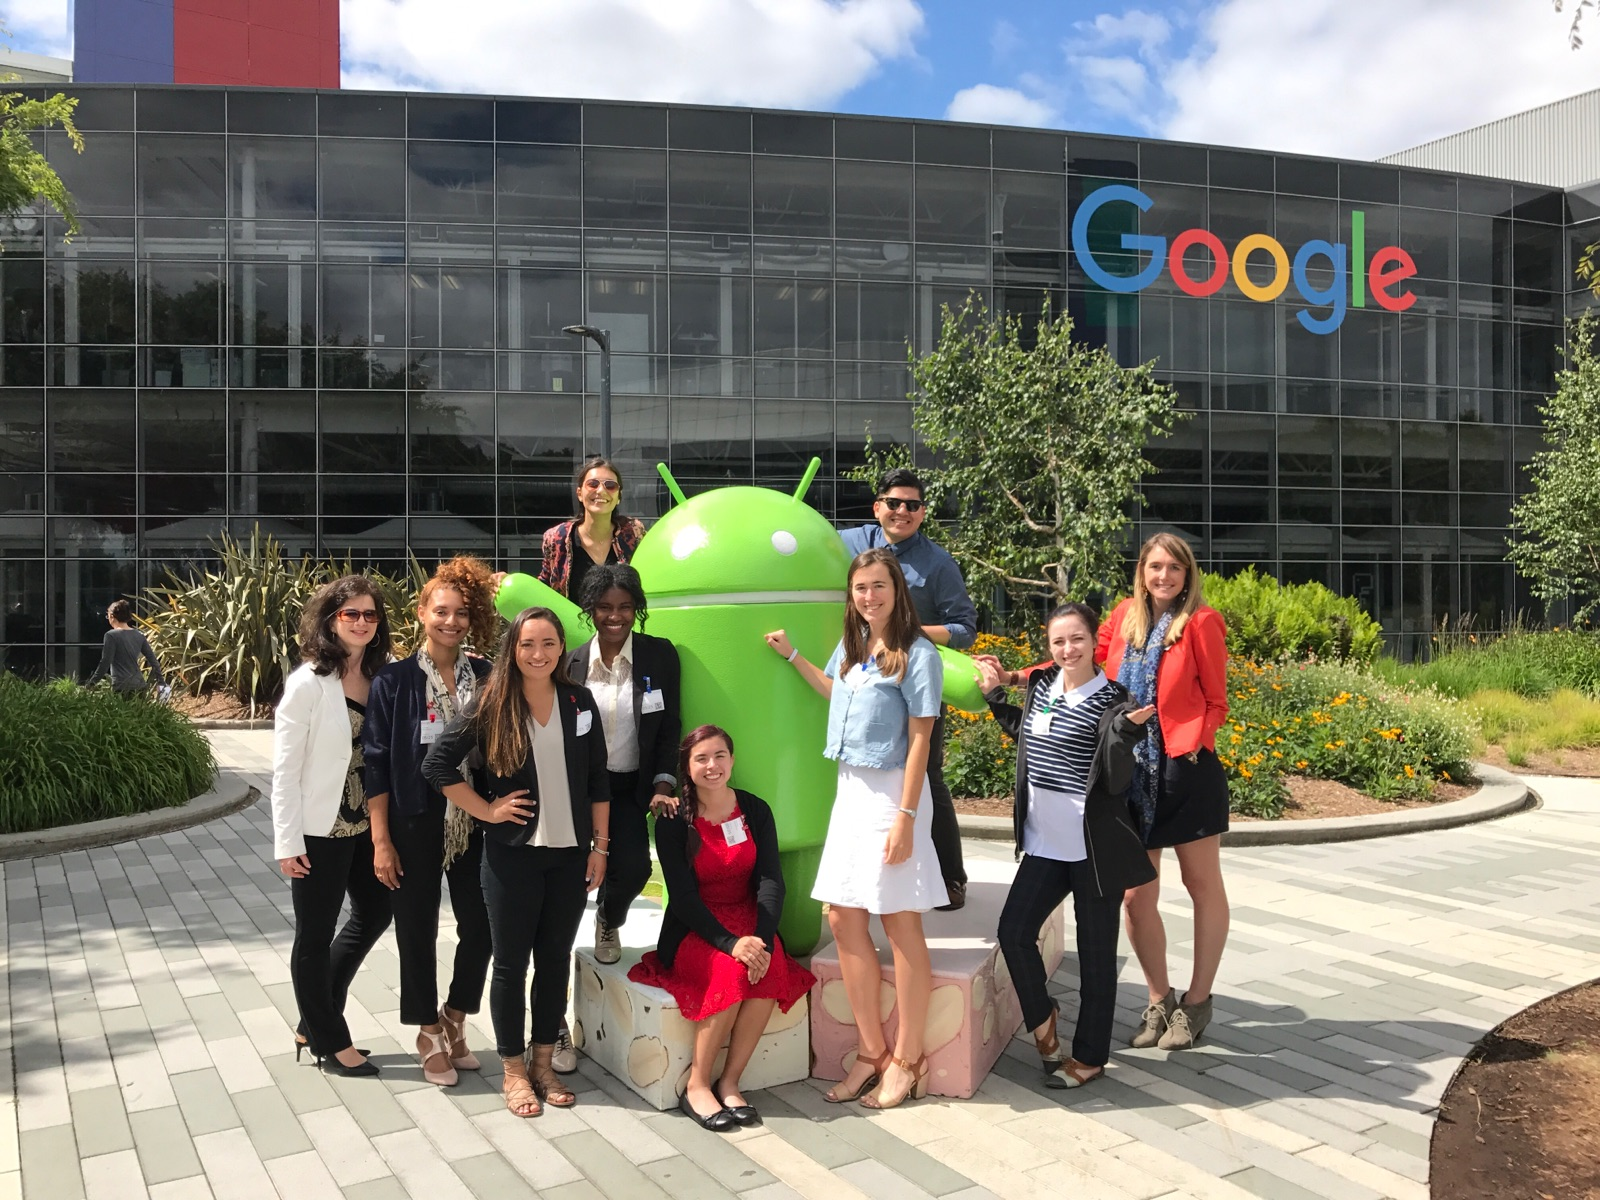 Google, Facebook, Amazon headquarters give UNT students peek at digital operations